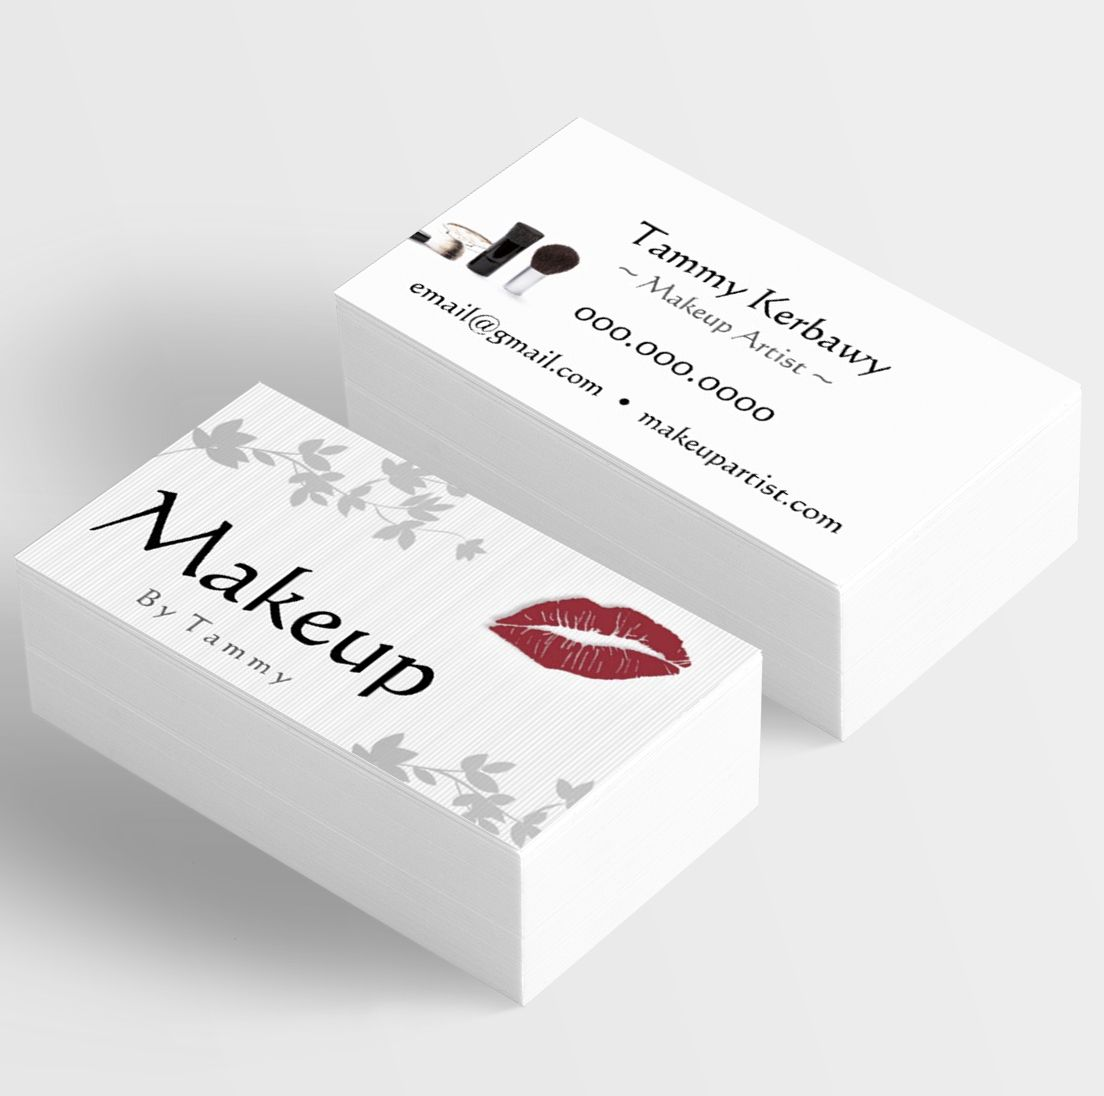 Makeup artist business card template kindly visit itwvisions makeup artist business card template kindly visit itwvisions or email tammyitwvisions mua makeupartist younique youniquepresenter makeup accmission Images